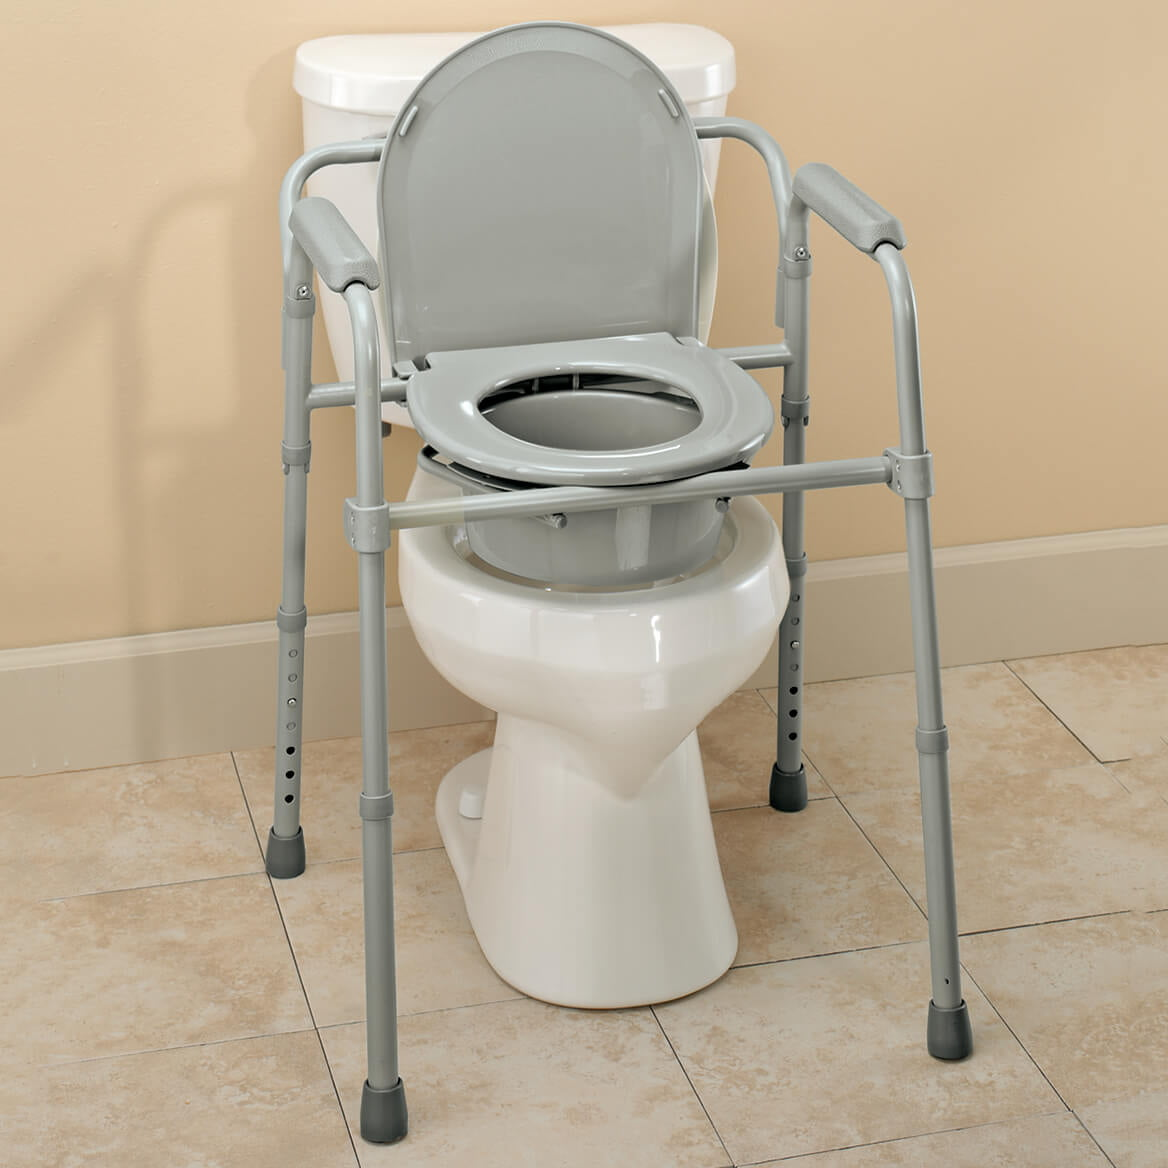 Folding Commode Portable Toilet And Bedside Commode Chair Includes Splash Guard Bucket Lid Cover Walmart Com Walmart Com